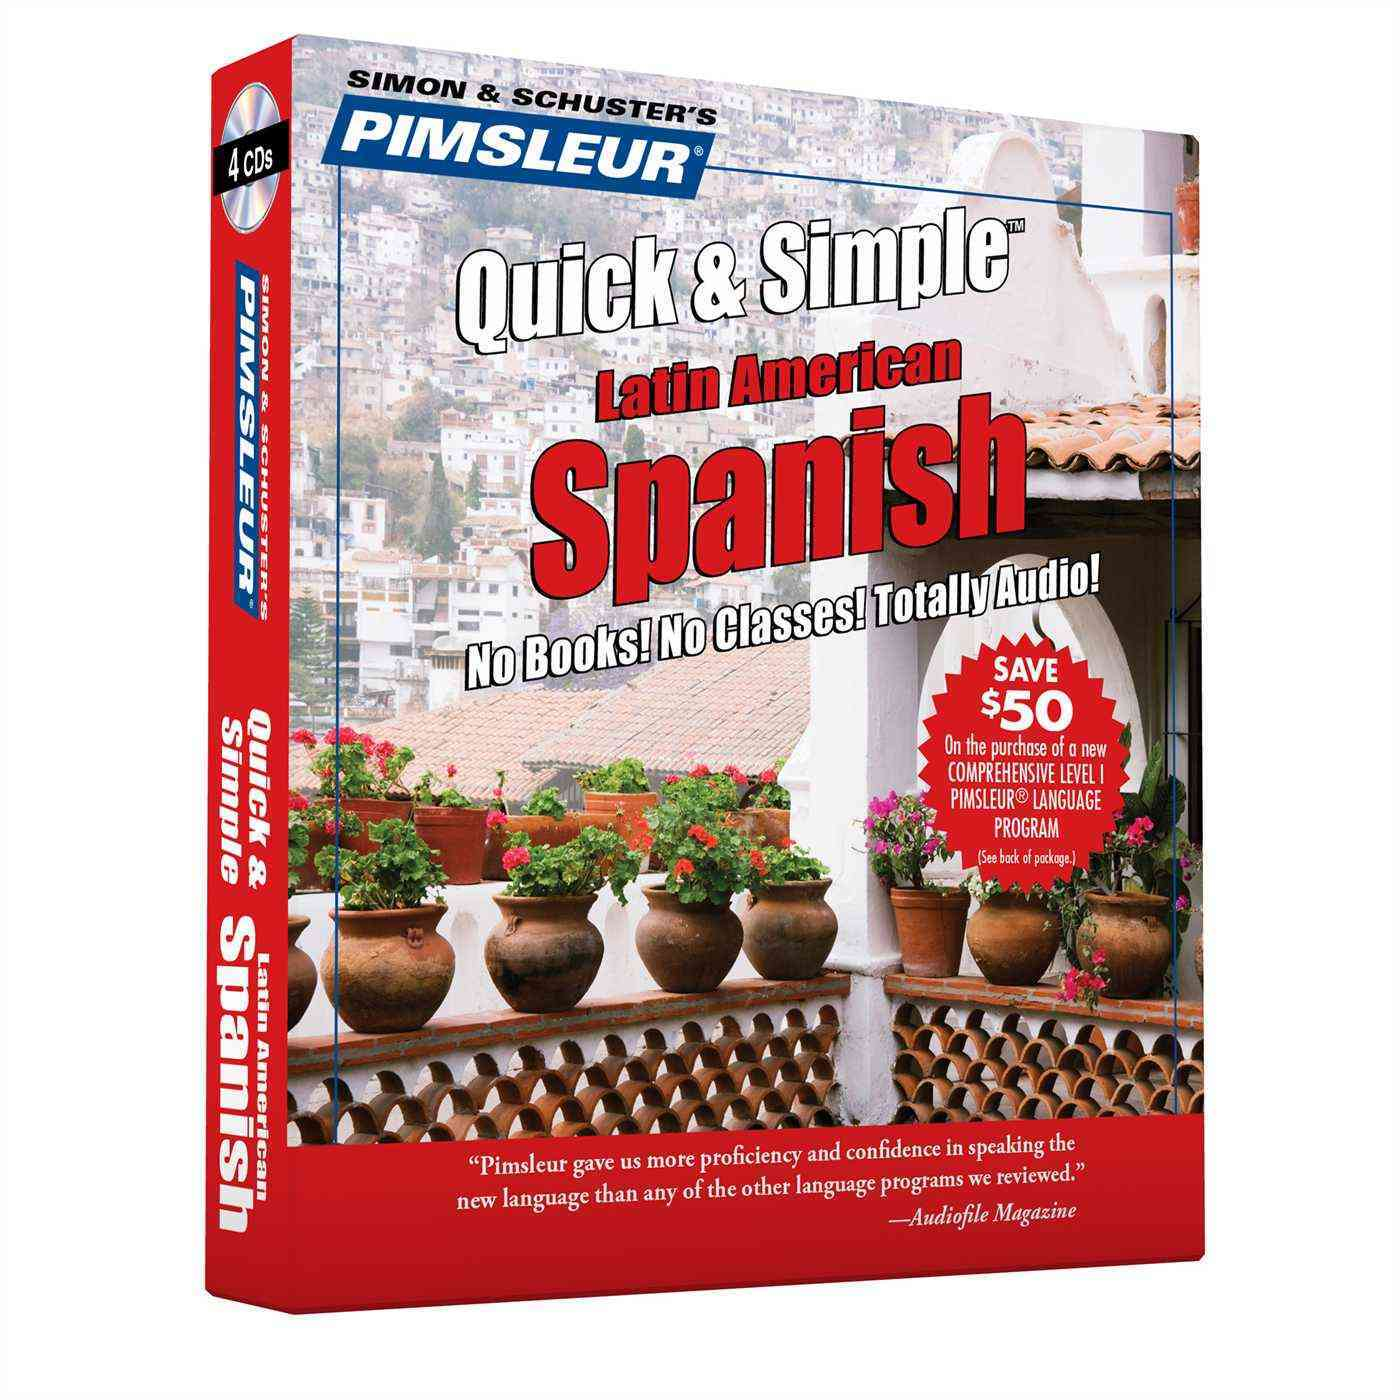 Pimsleur Quick & Simple Spanish 1: Latin American Spanish (CD-Audio) - Thumbnail 0